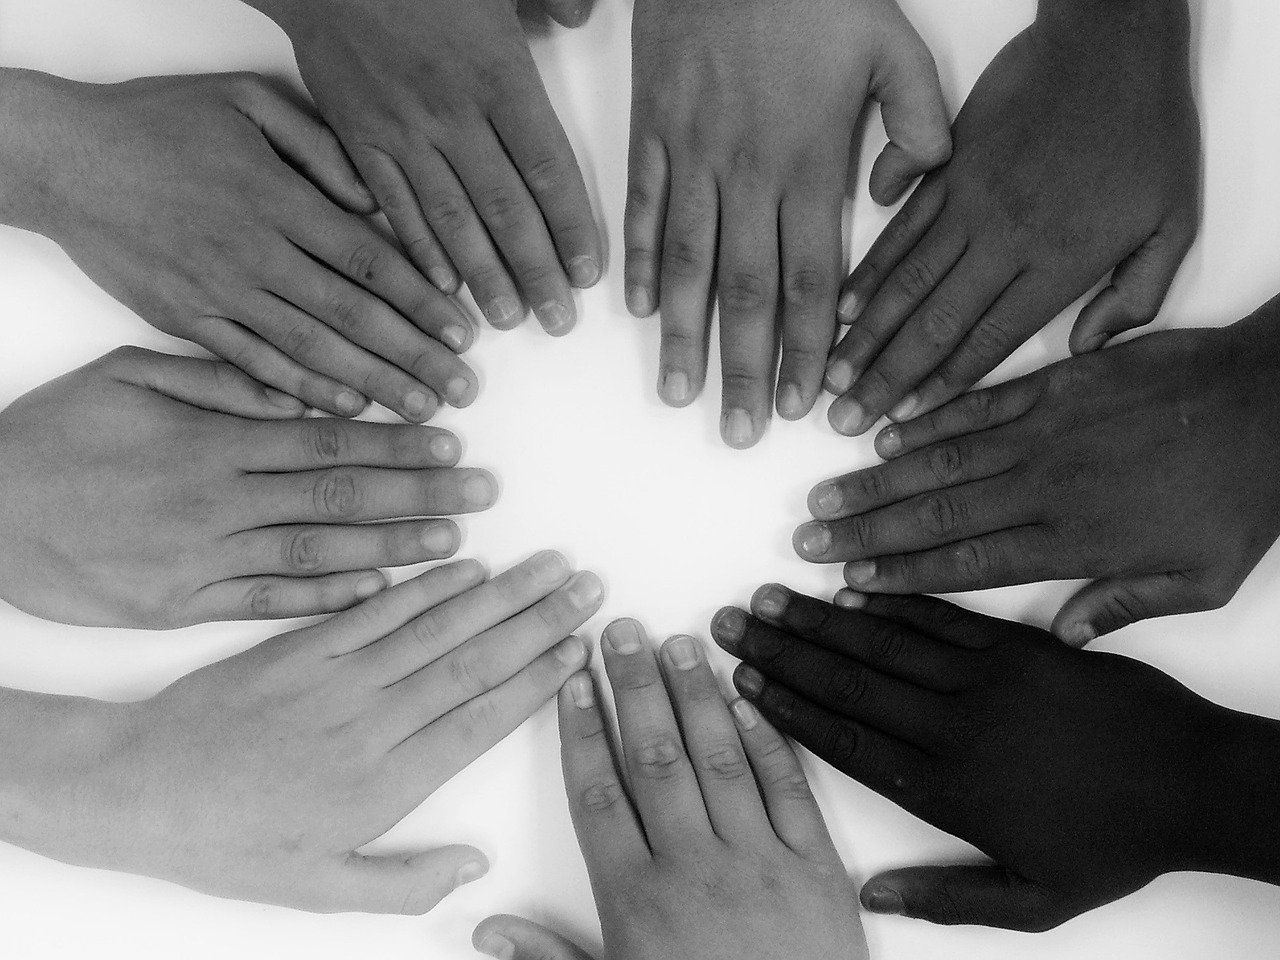 people's hands forming a circle, different skin colors